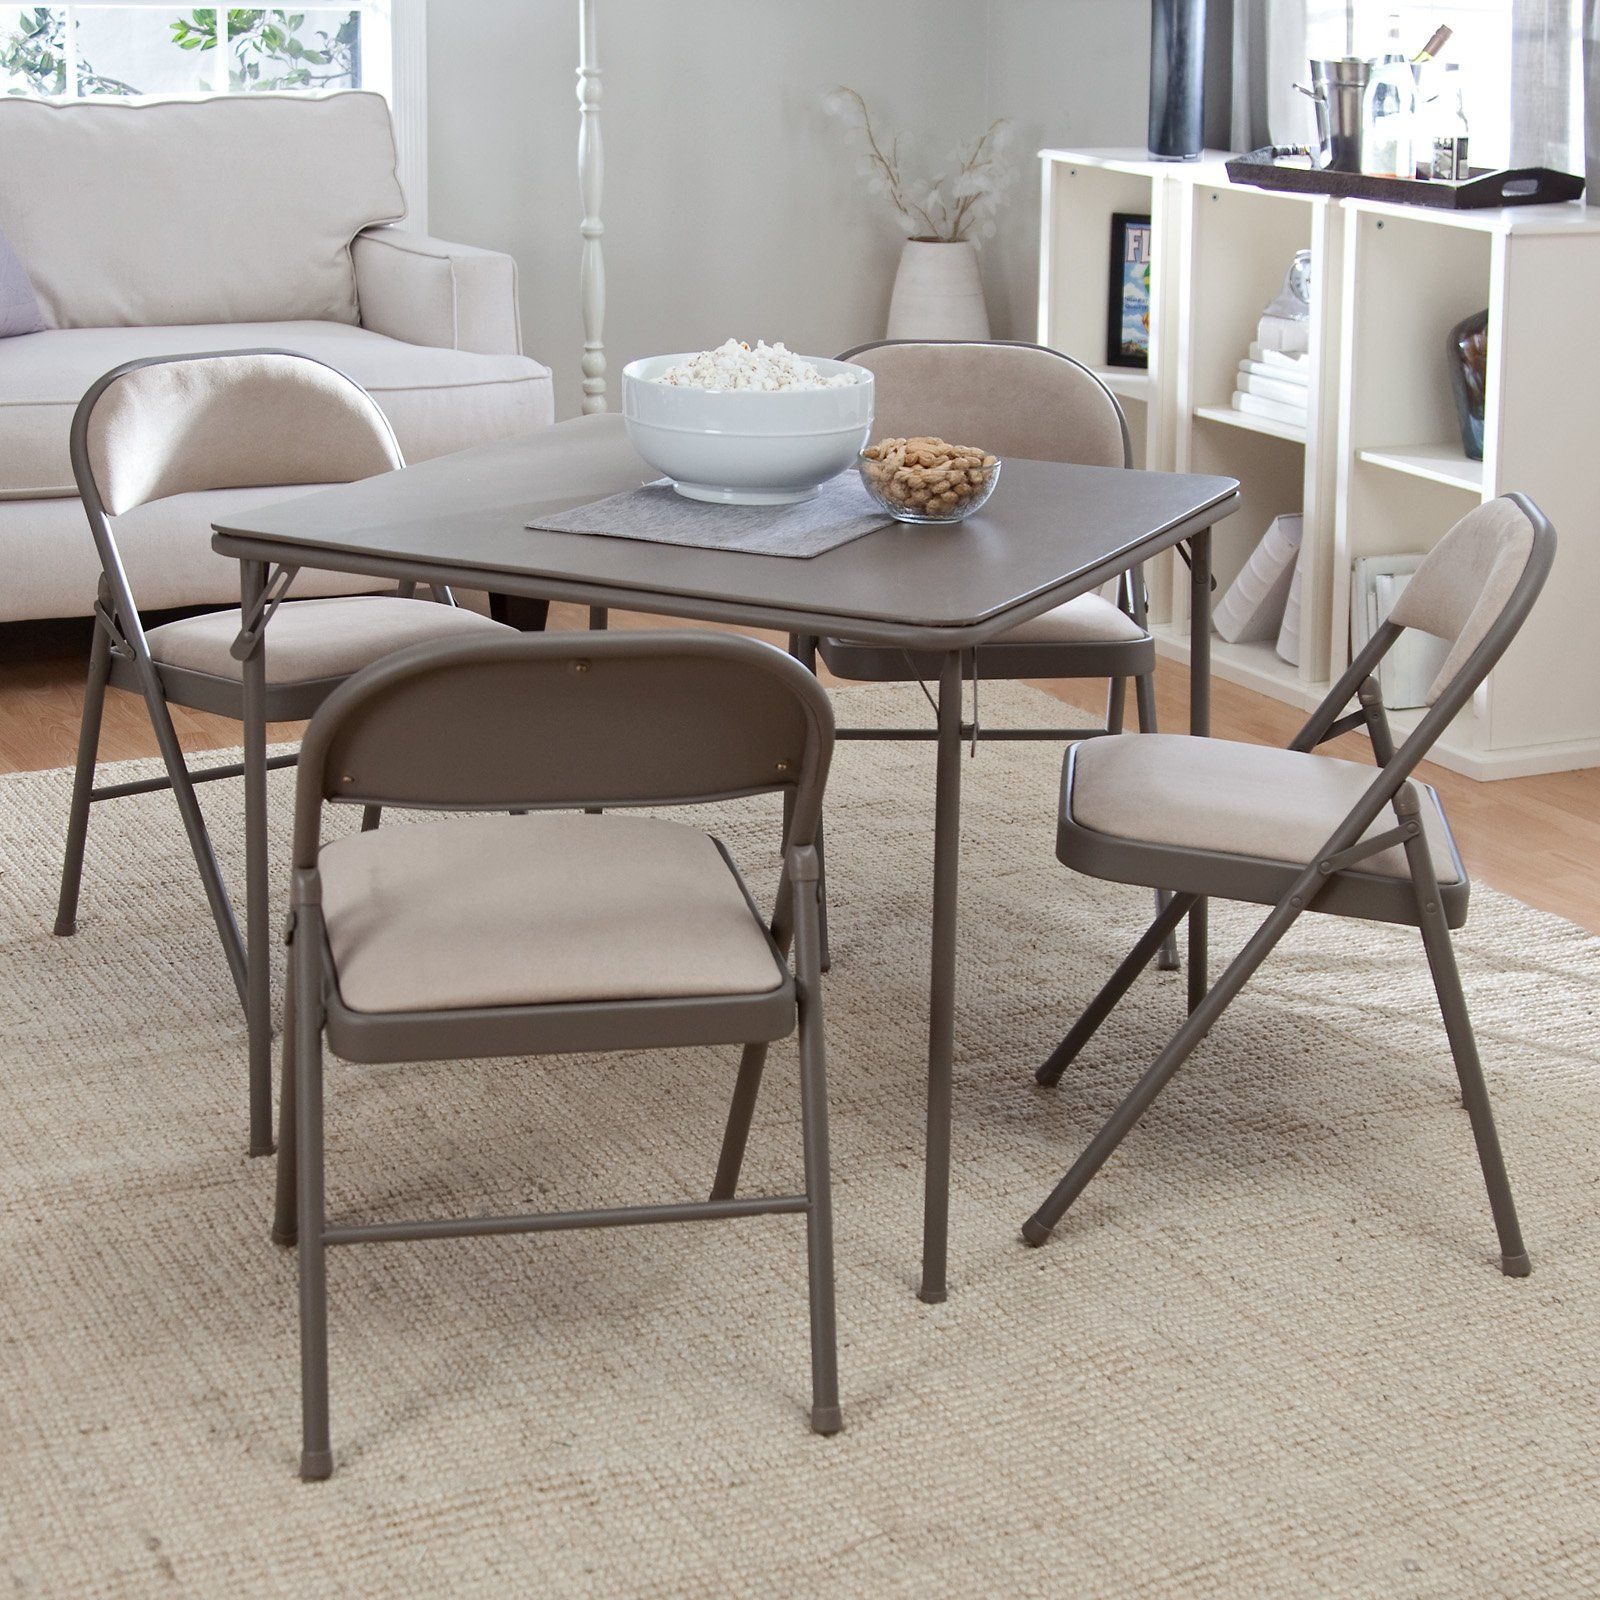 Folding dining table and chair set  Have to have it Meco Sudden Comfort  Piece Card Table Set